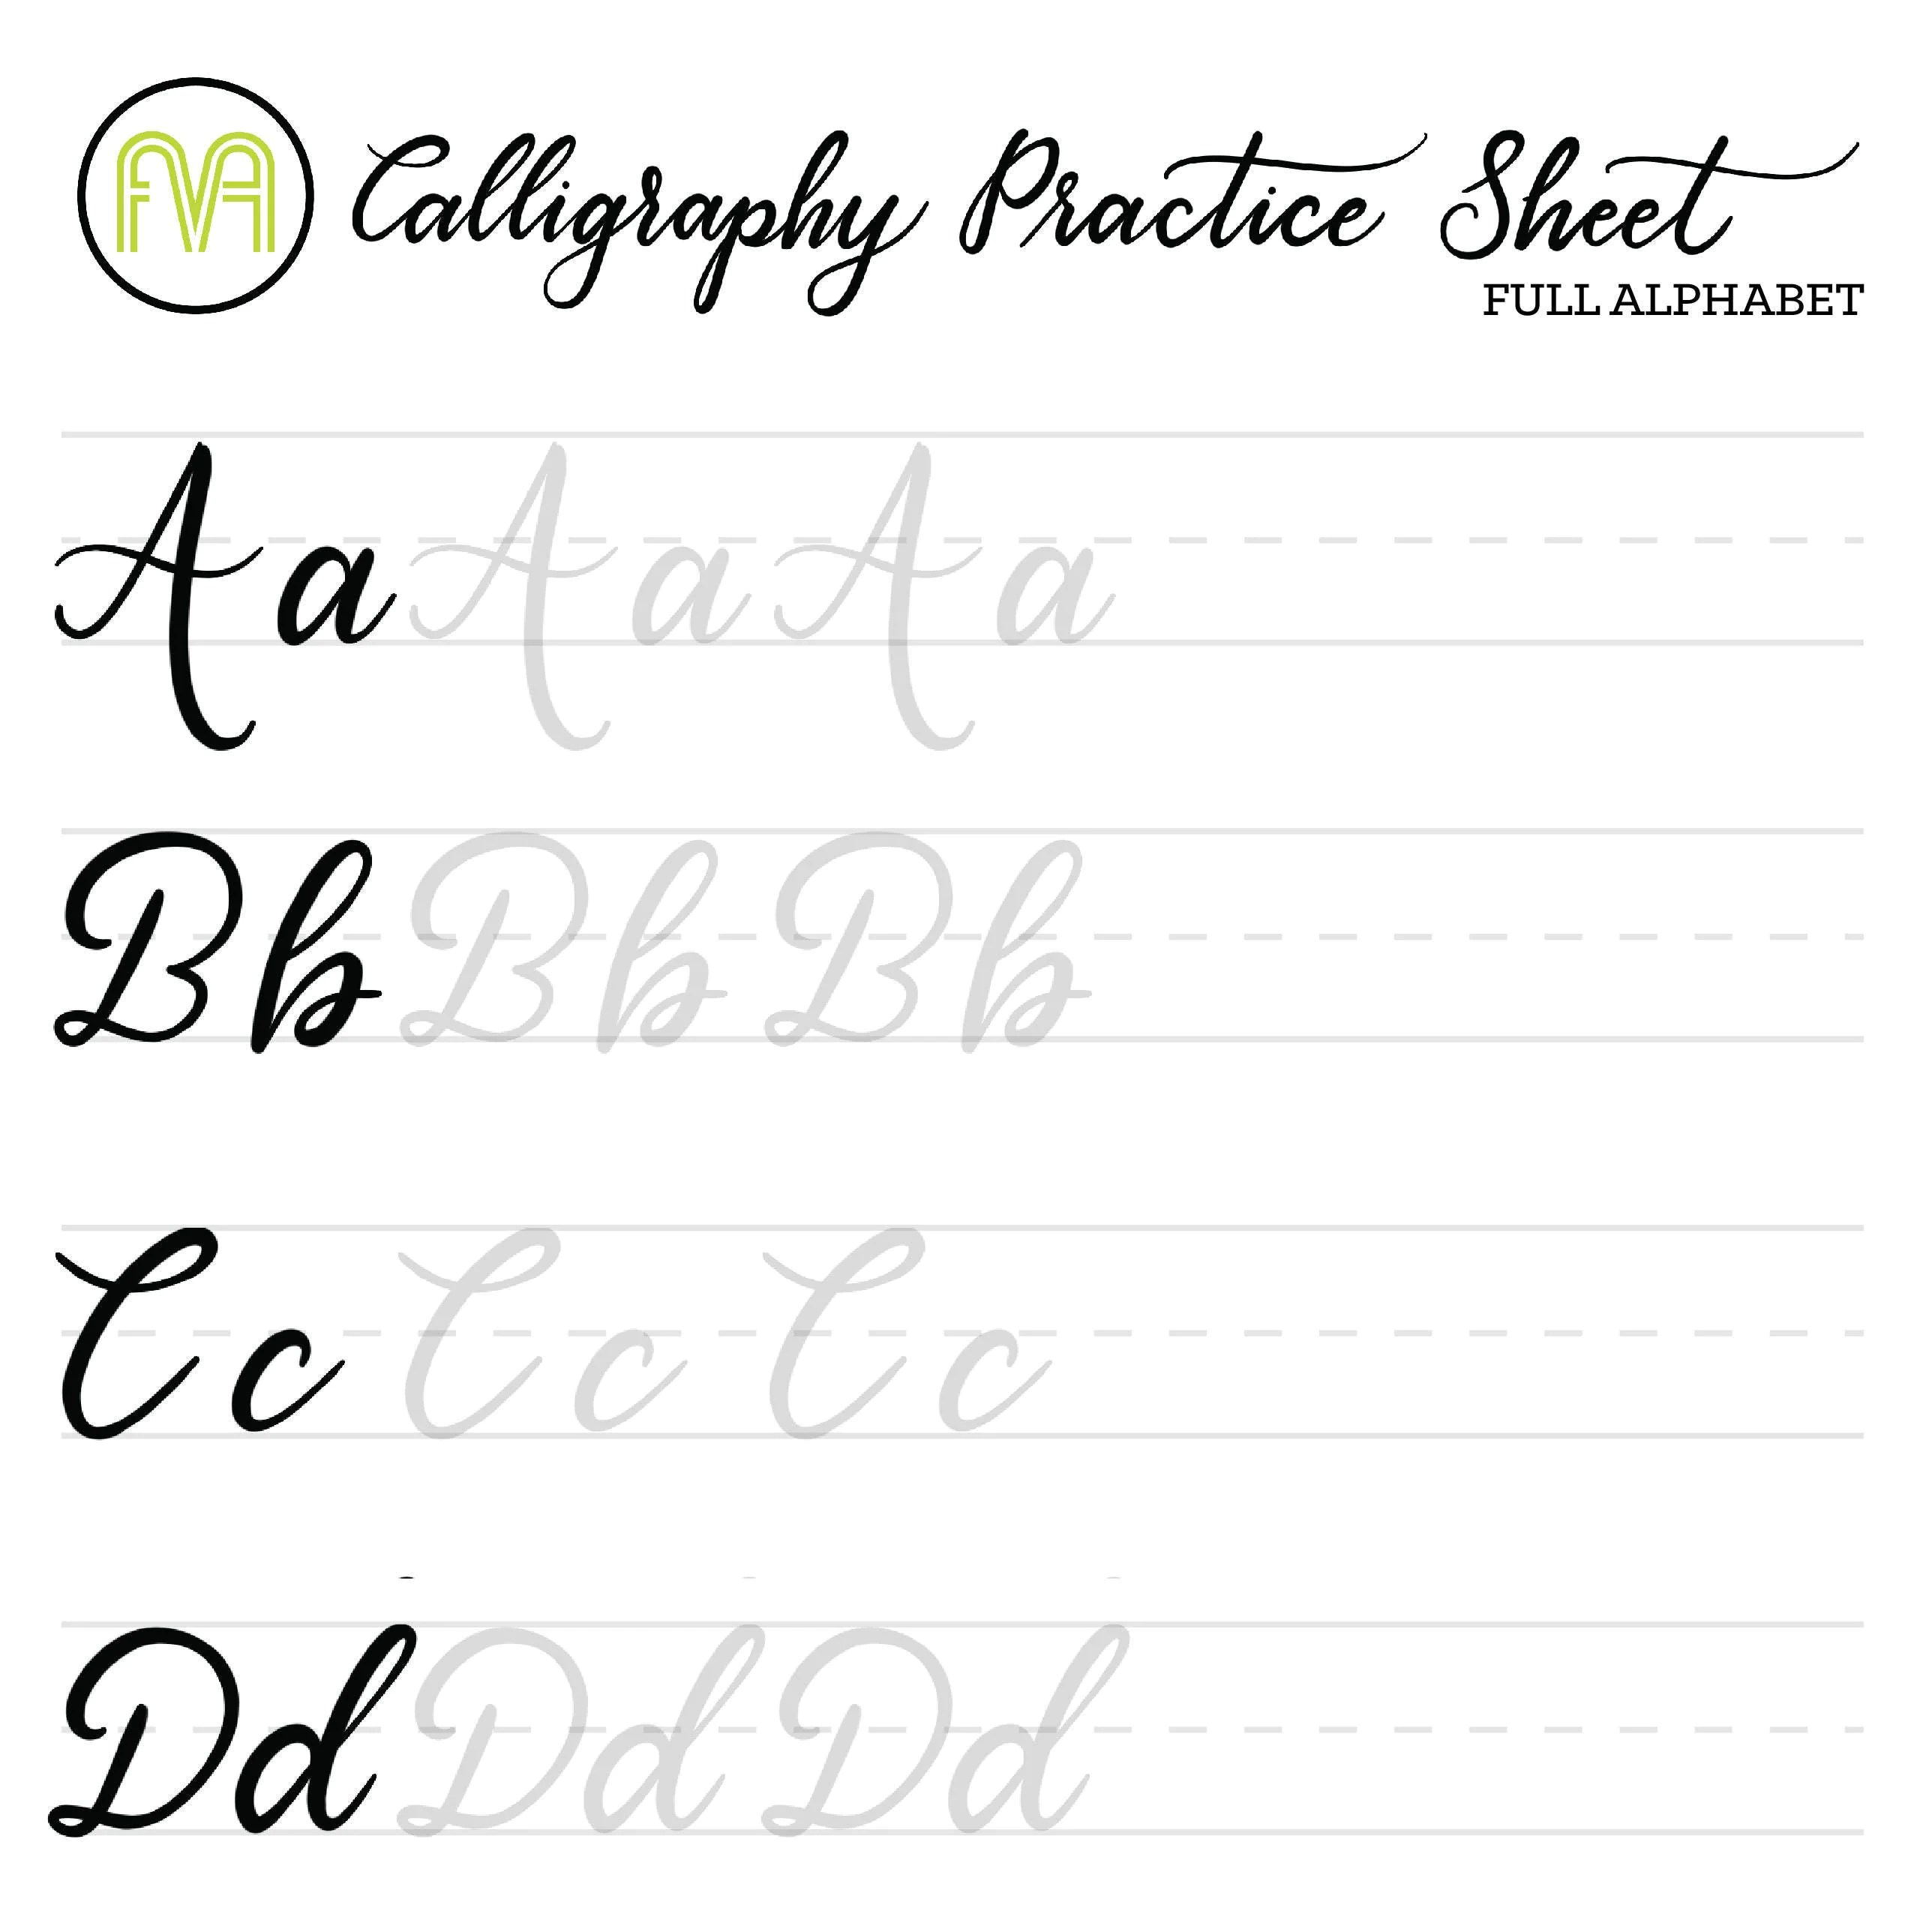 Universal Calligraphy Practice Sheets Printable